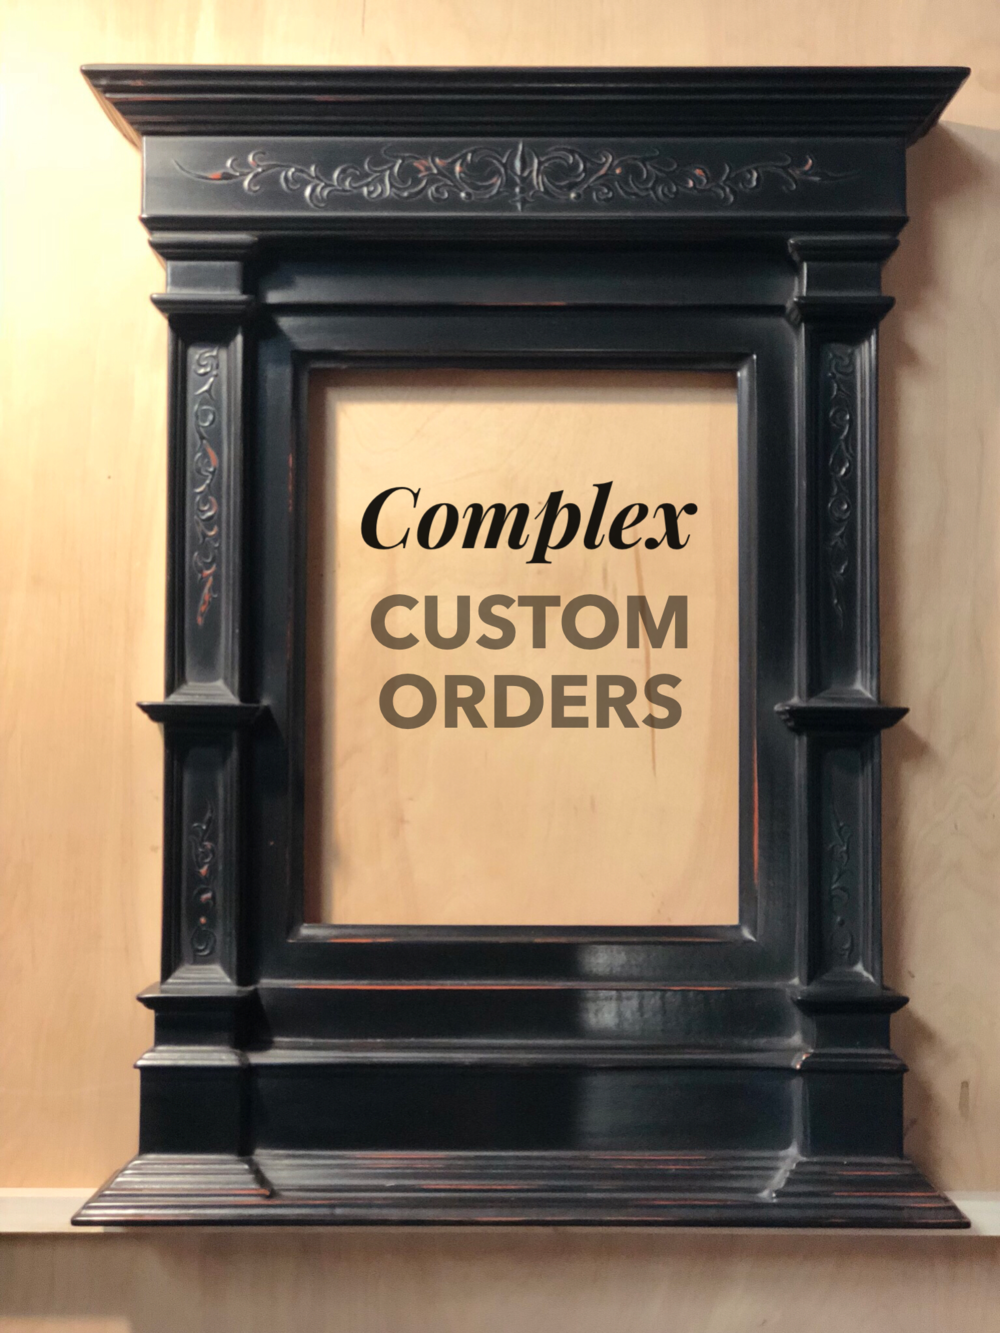 Click the image for Simple Custom Orders